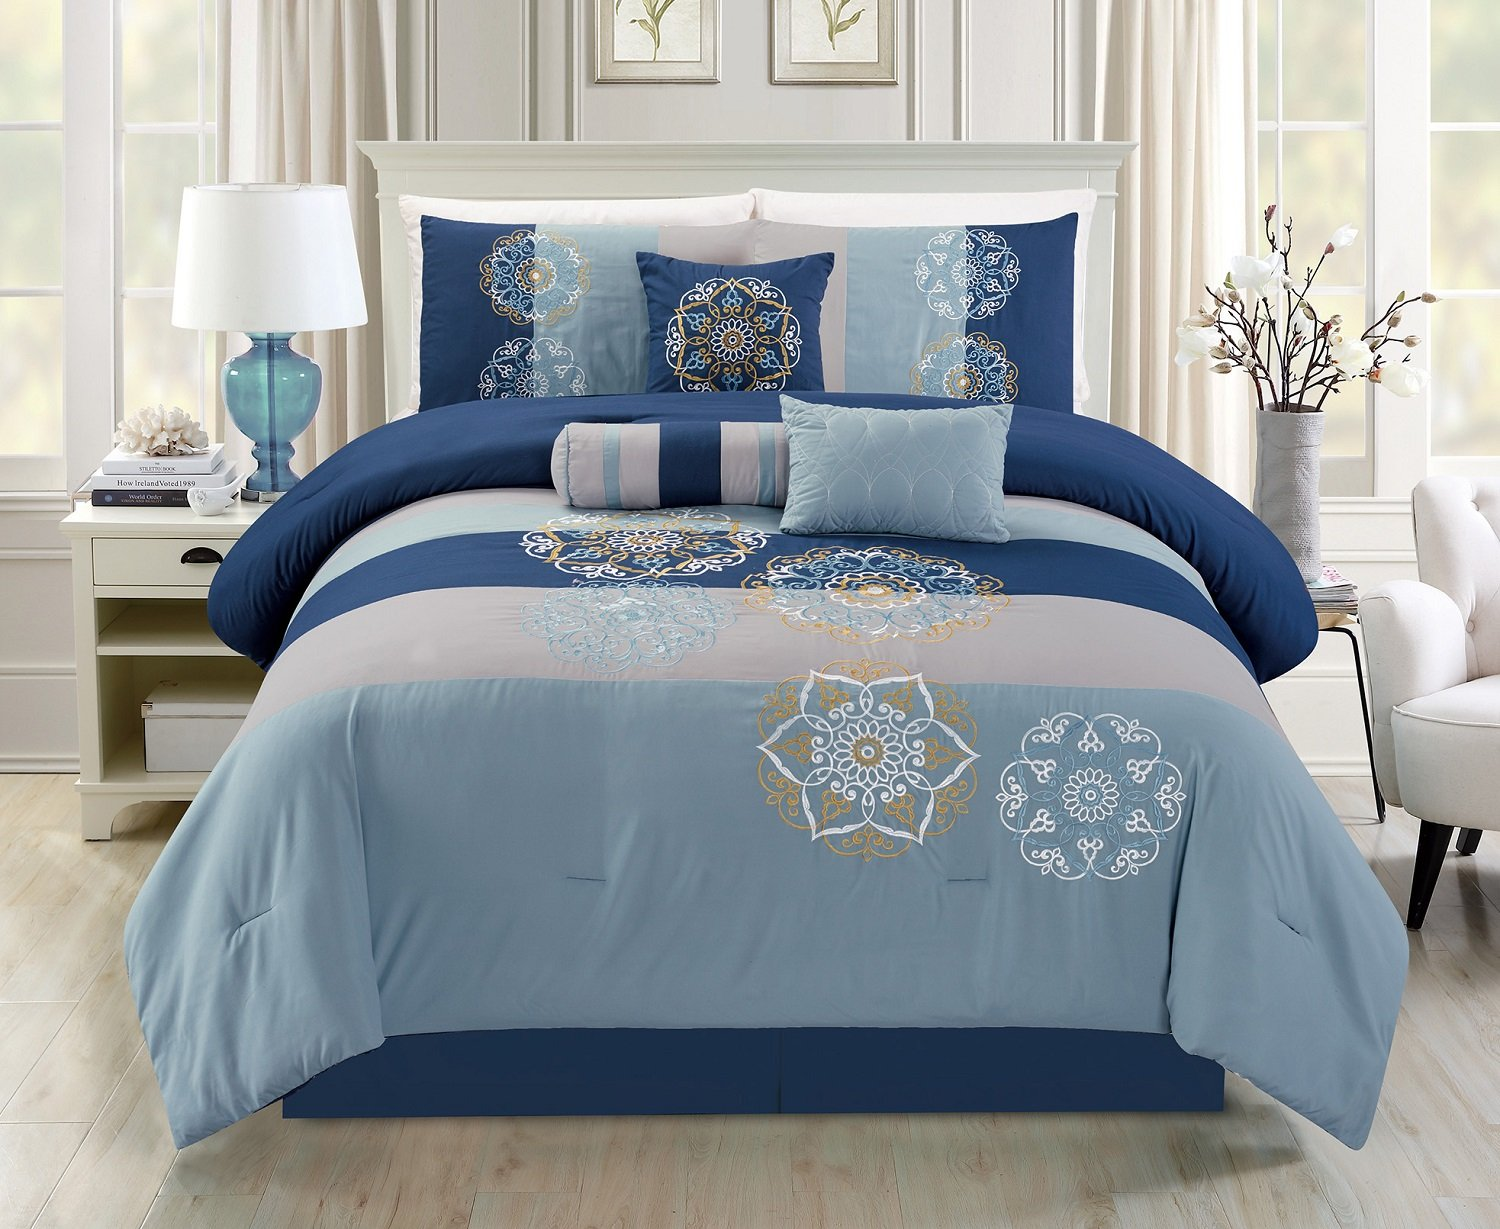 Modern 7-piece 2-tone Blue and Gray Floral Embroidery Bedding Comforter Set